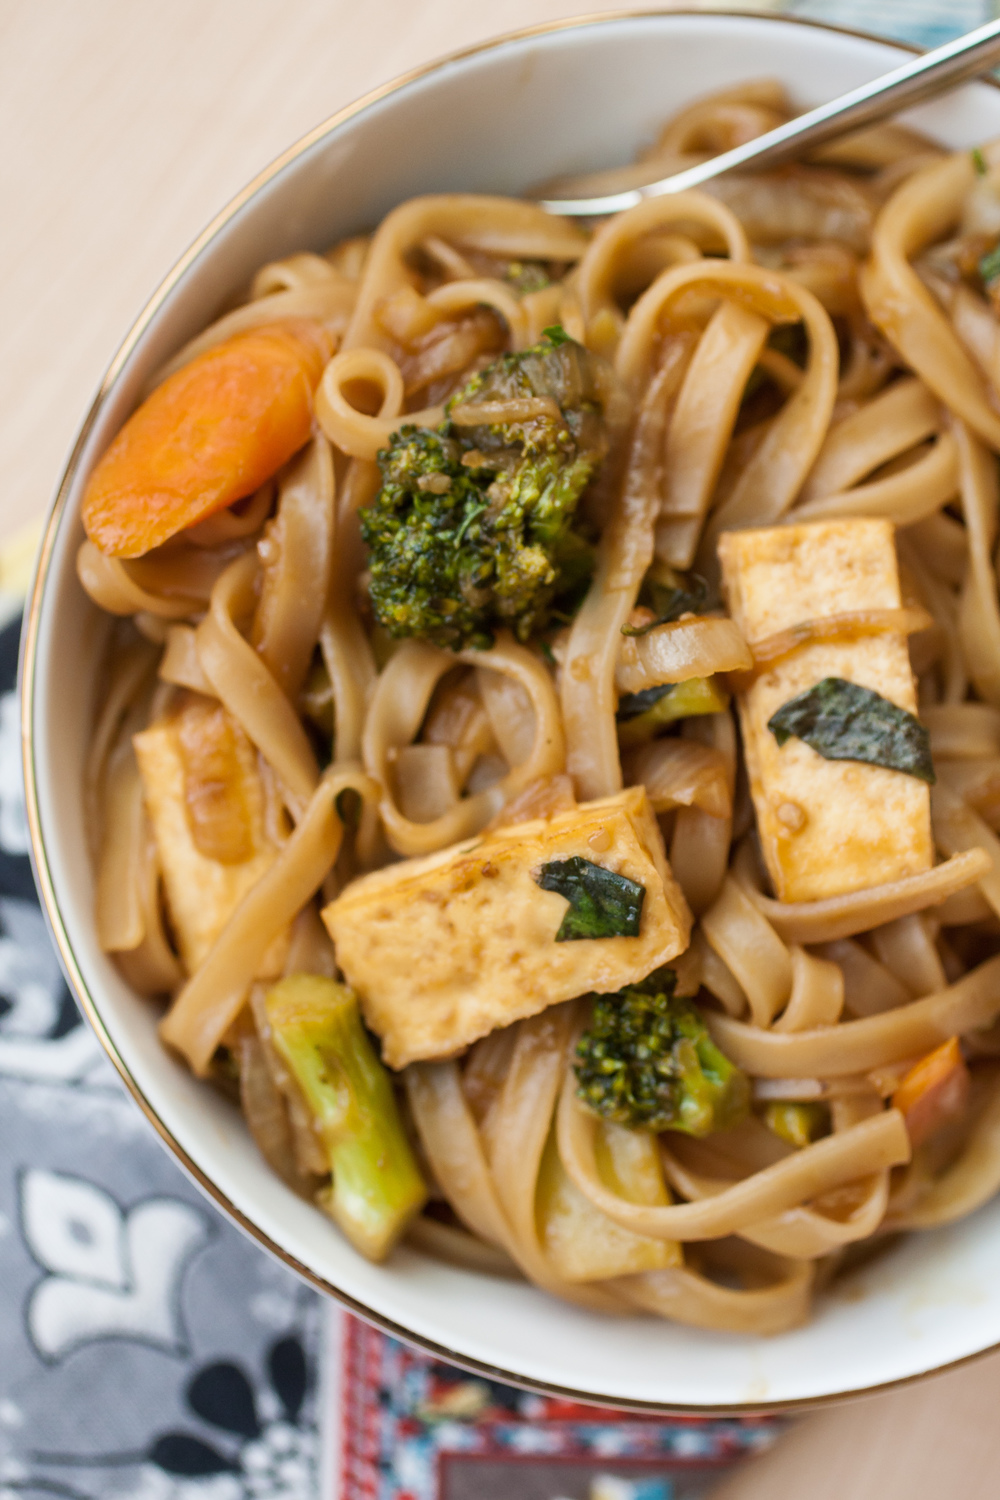 Baked tofu, and sauteed carrot and broccoli mingle with thick rice noodles; bathed in a sweet and salty Thai sauce with fresh basil. This is sure to be a family favorite.